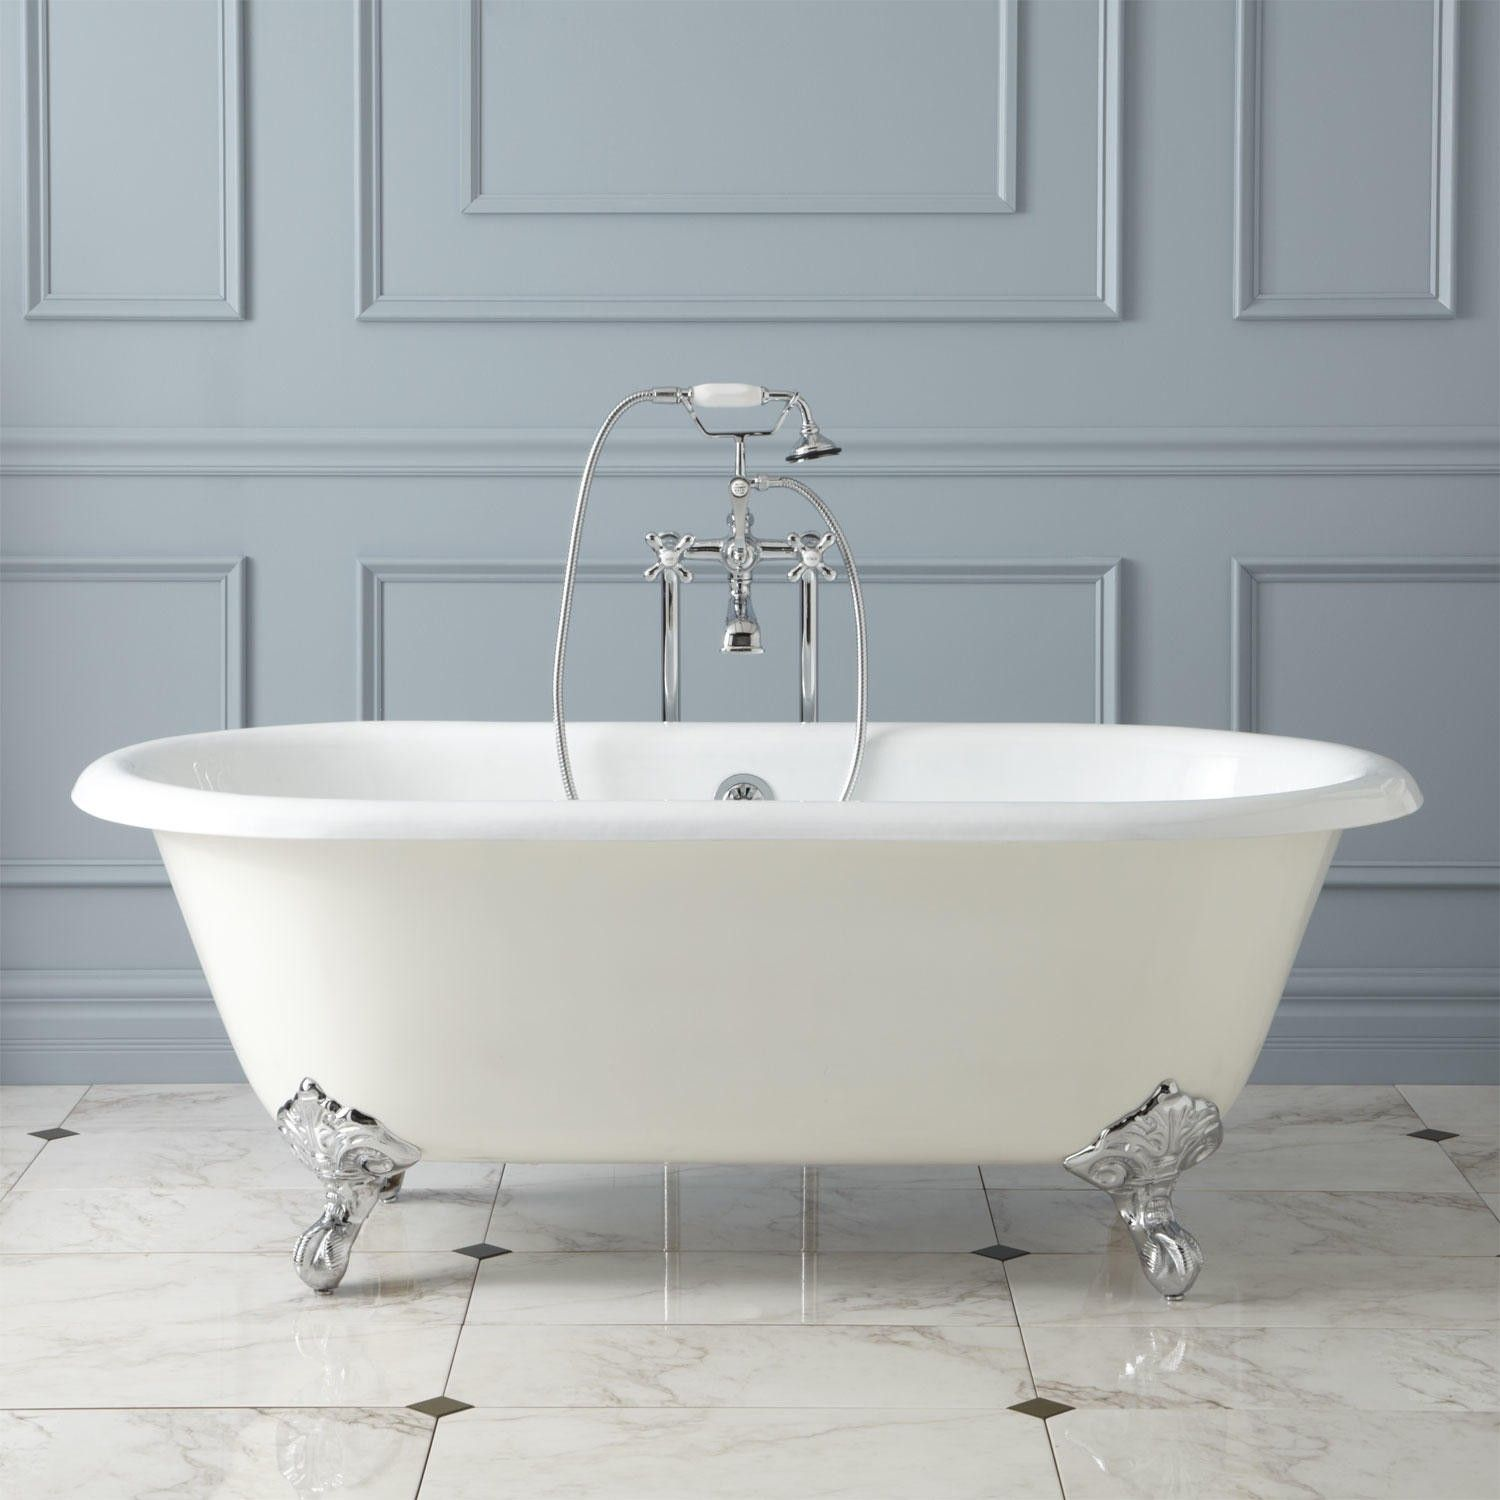 Ralston Cast Iron Clawfoot Tub Imperial Feet These Feet Can Also Come In White This Tames The Look Down A Bit Clawfoot Tub Clawfoot Bathtub